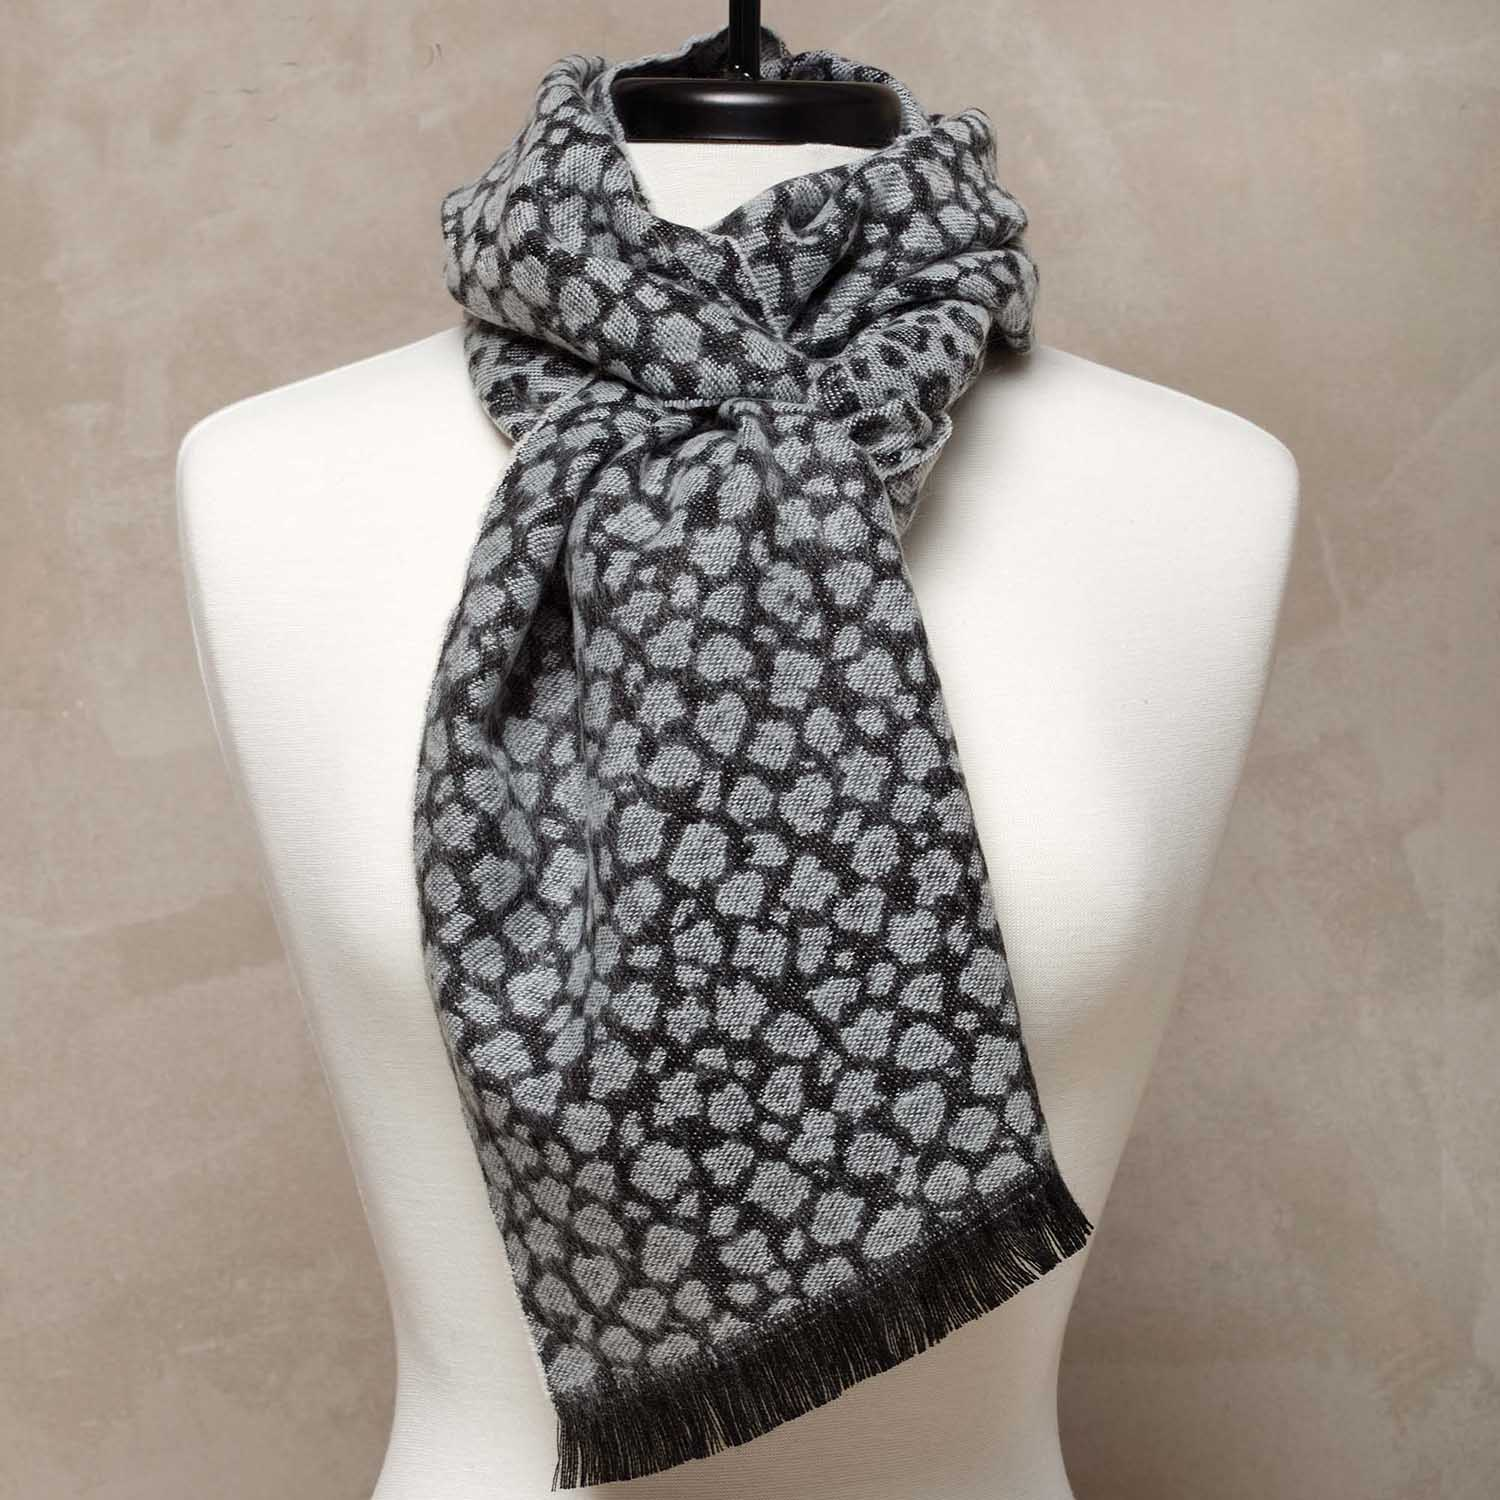 Leopard Print Scarf Gray - Snow Leopard *30sp